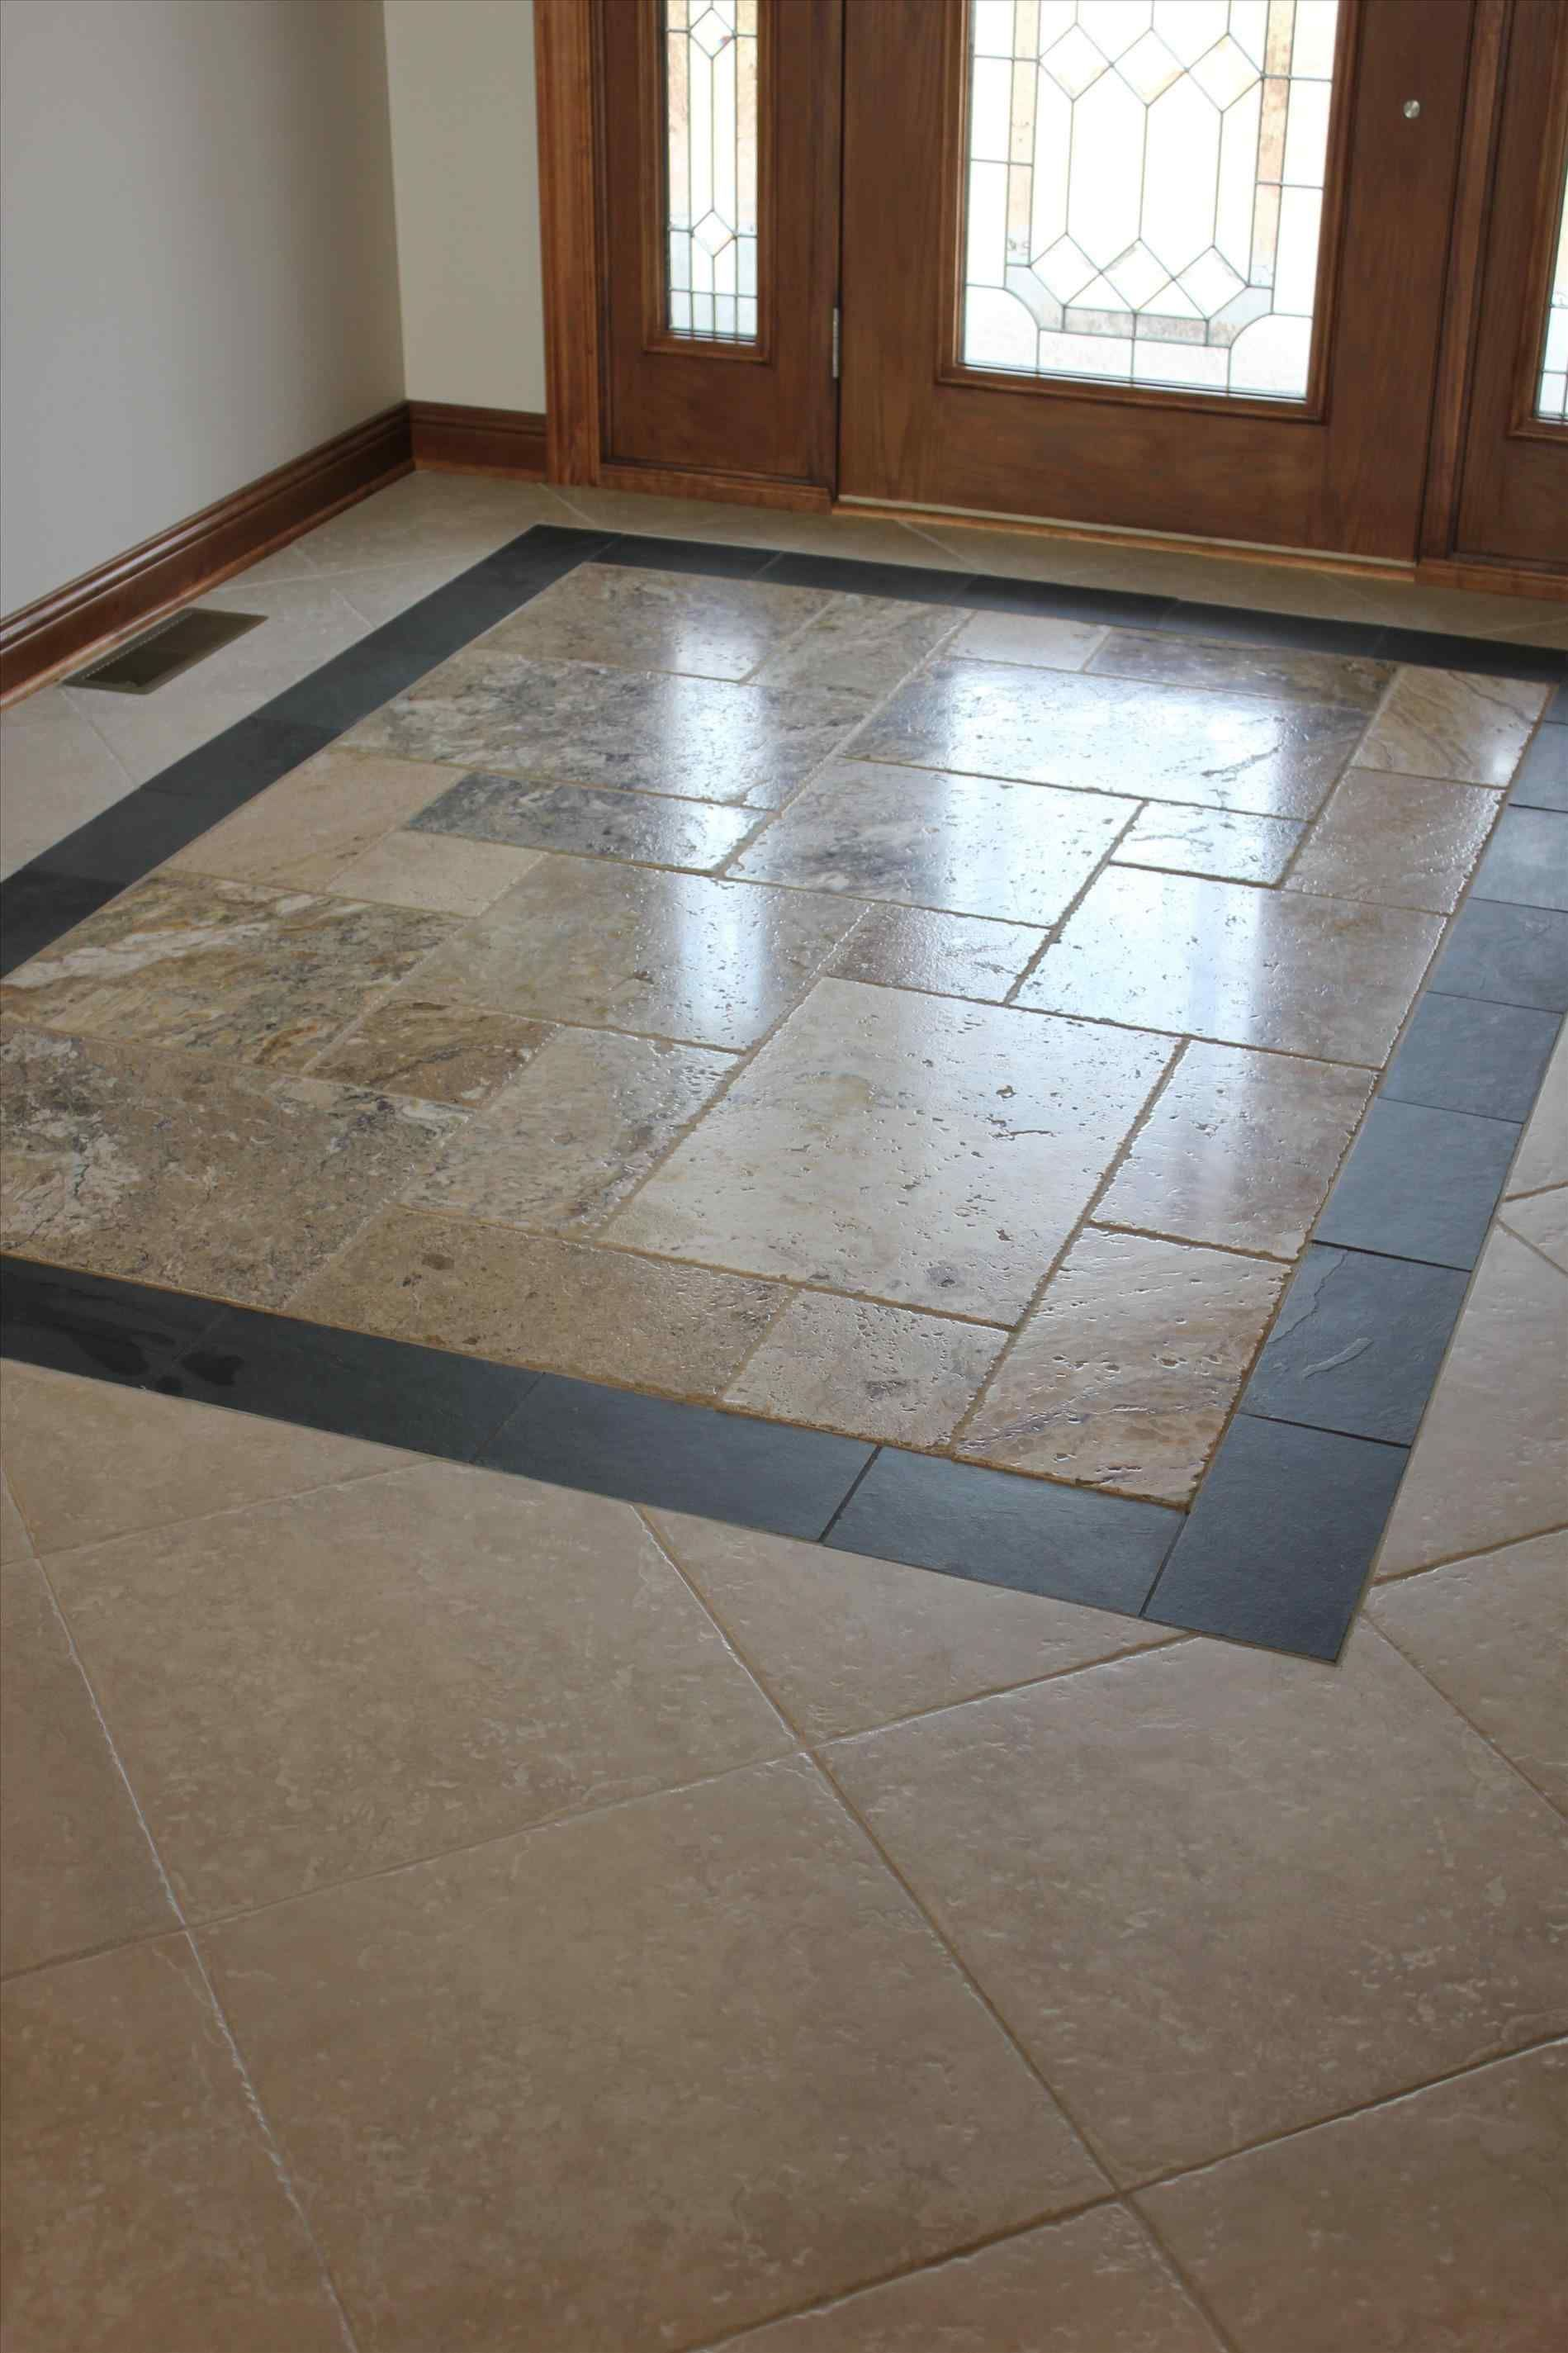 Gorgeous Entry Floor Tile Designs For Your Home Inspiration Breakpr